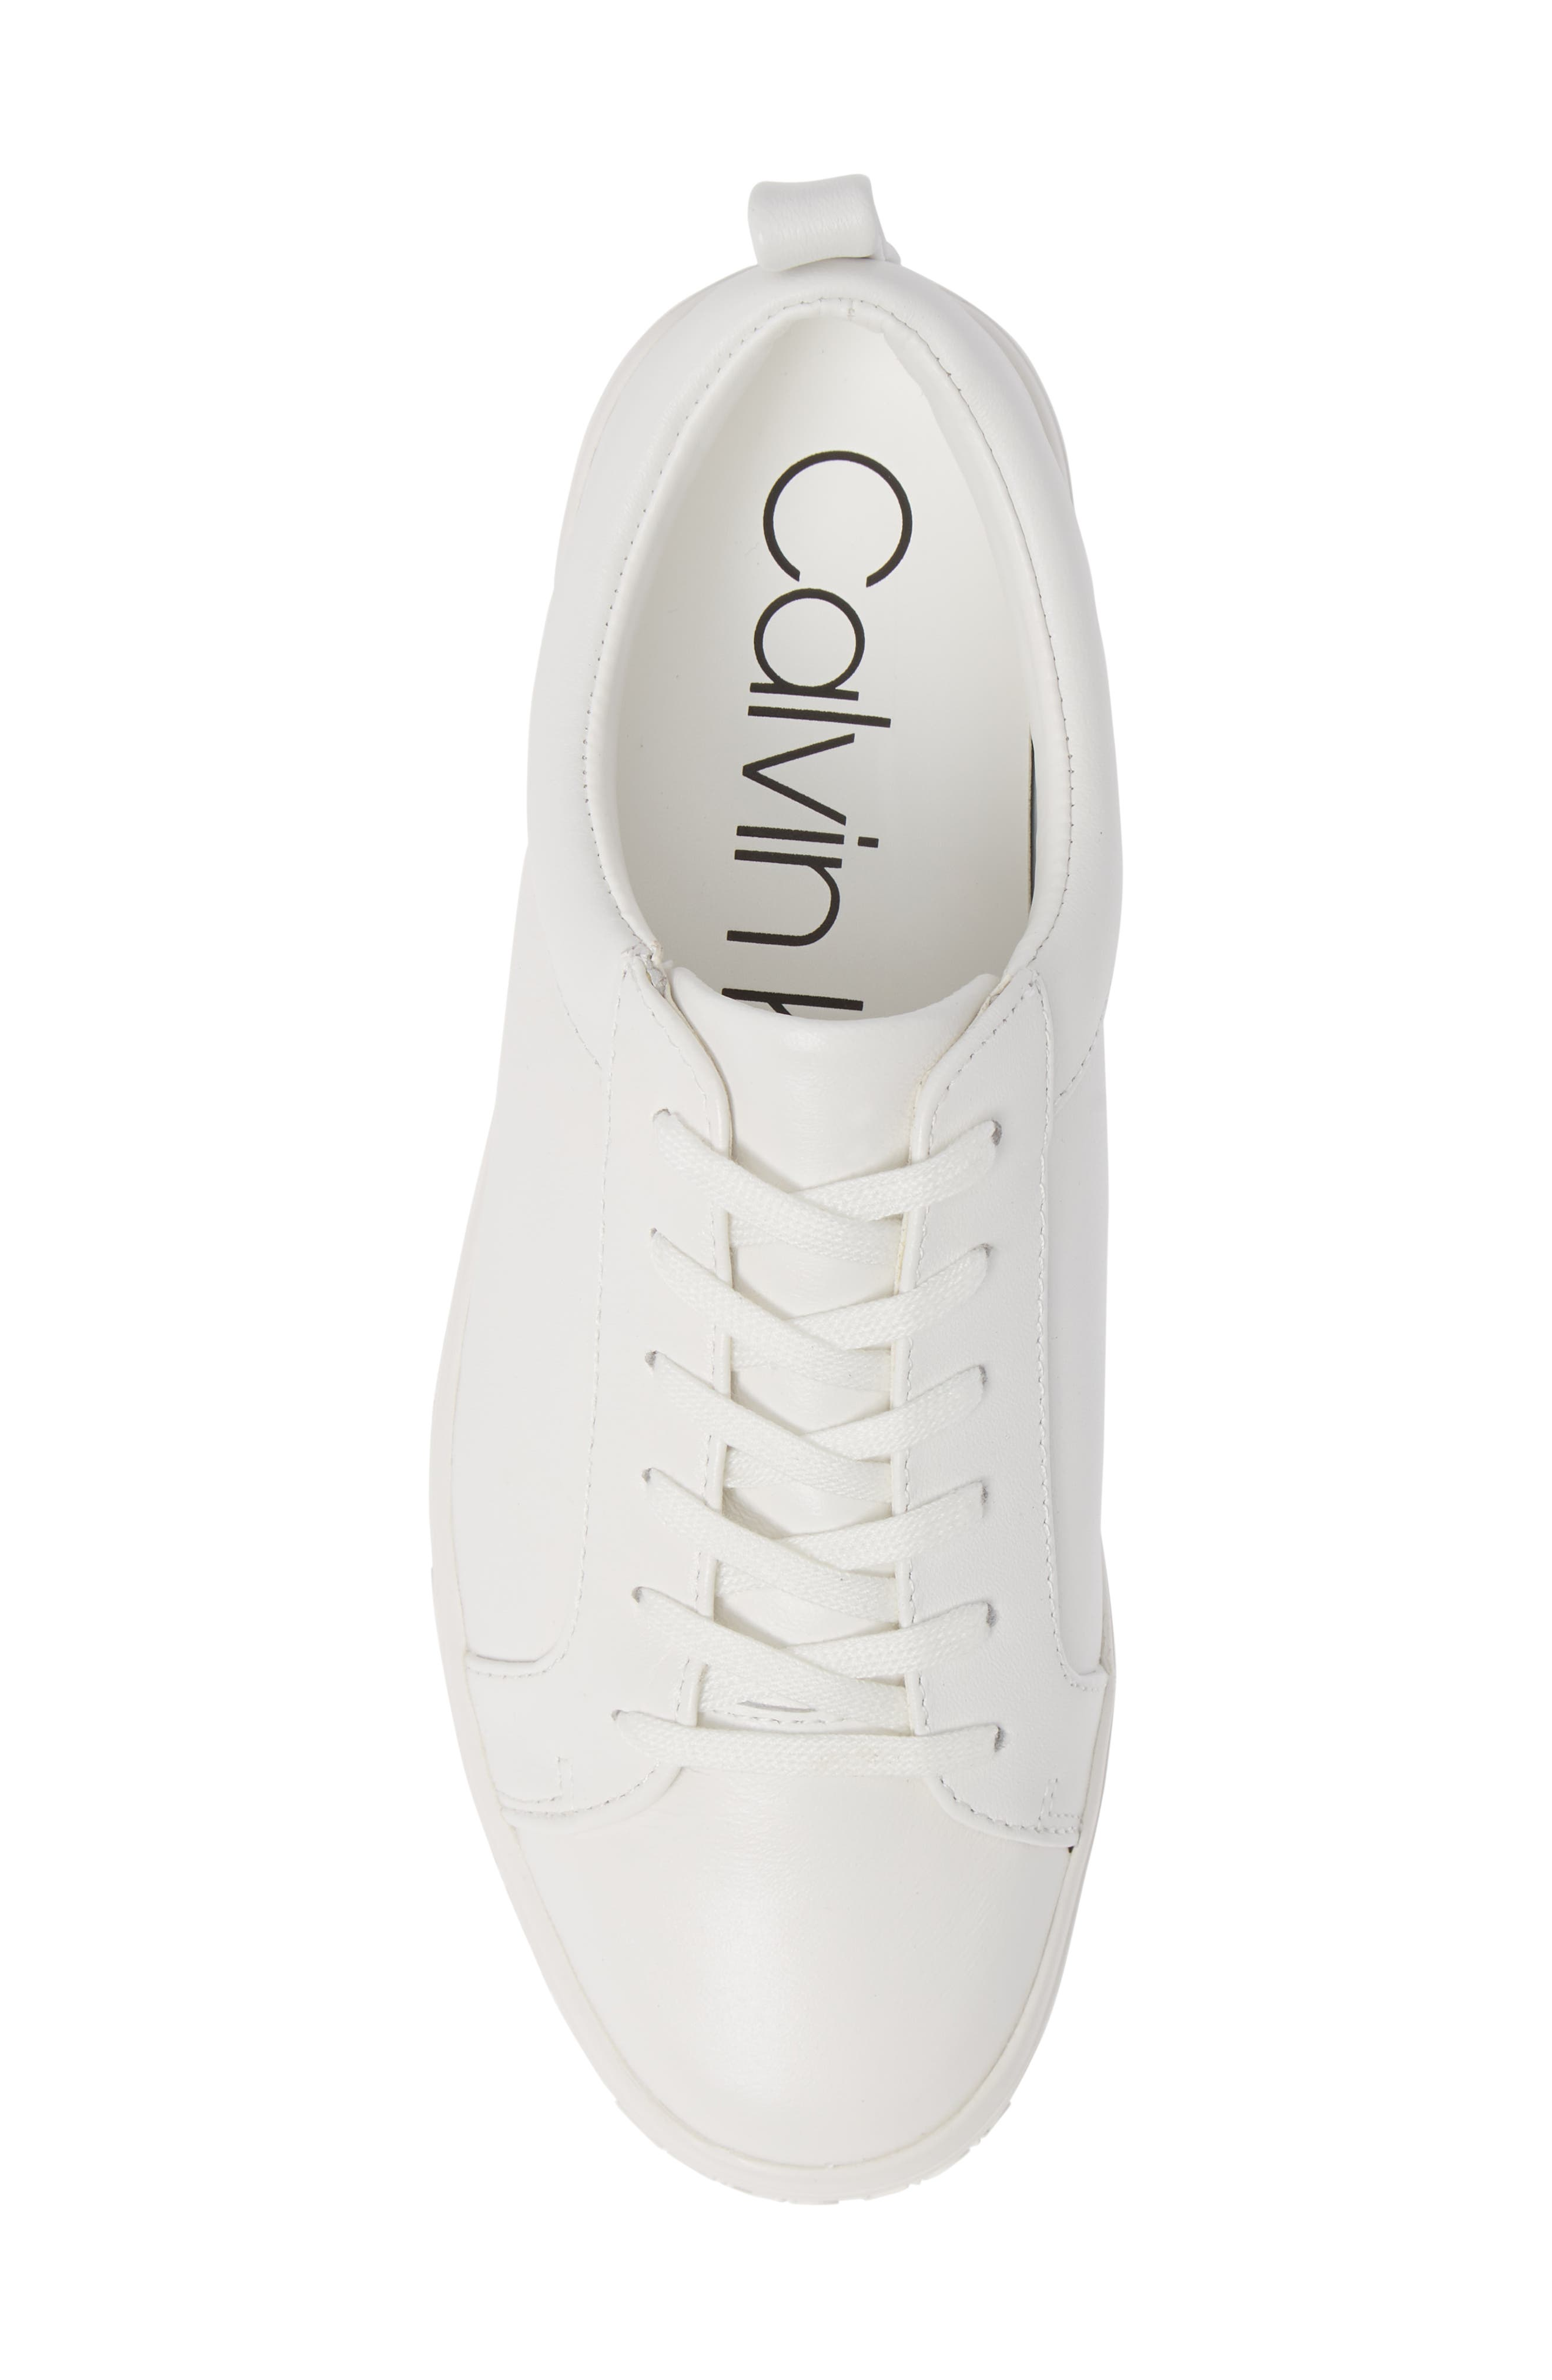 CALVIN KLEIN, Jaelee Sneaker, Alternate thumbnail 5, color, WHITE NAPPA LEATHER